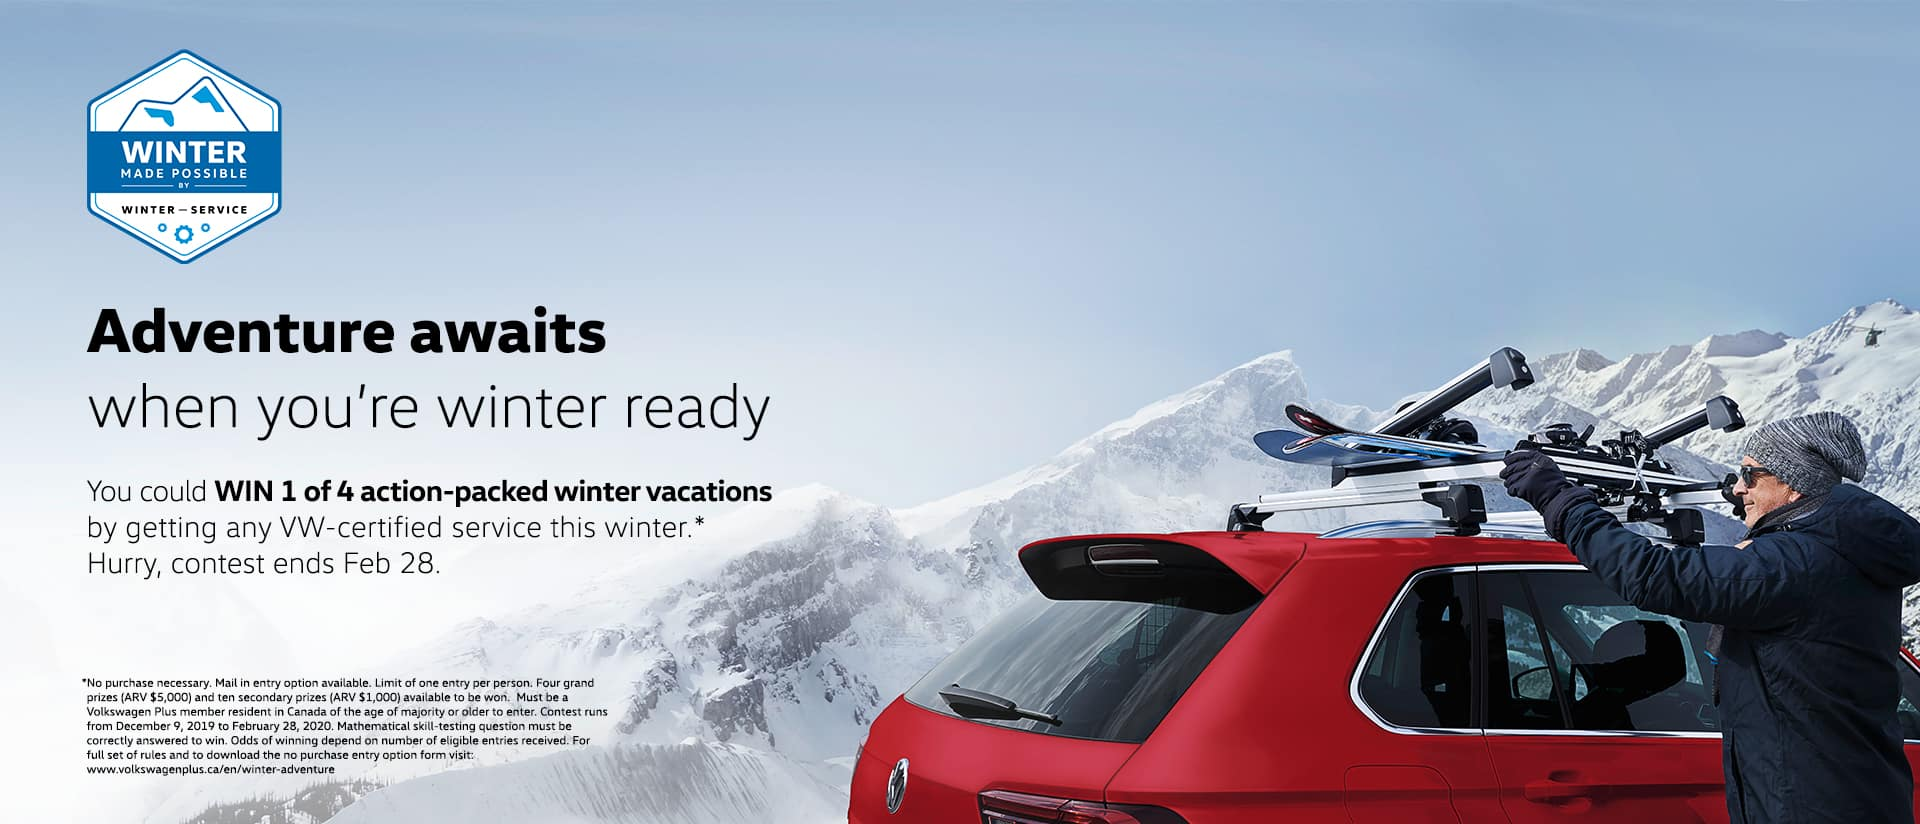 roof of red volkswagen with man loading ski equipment on roof